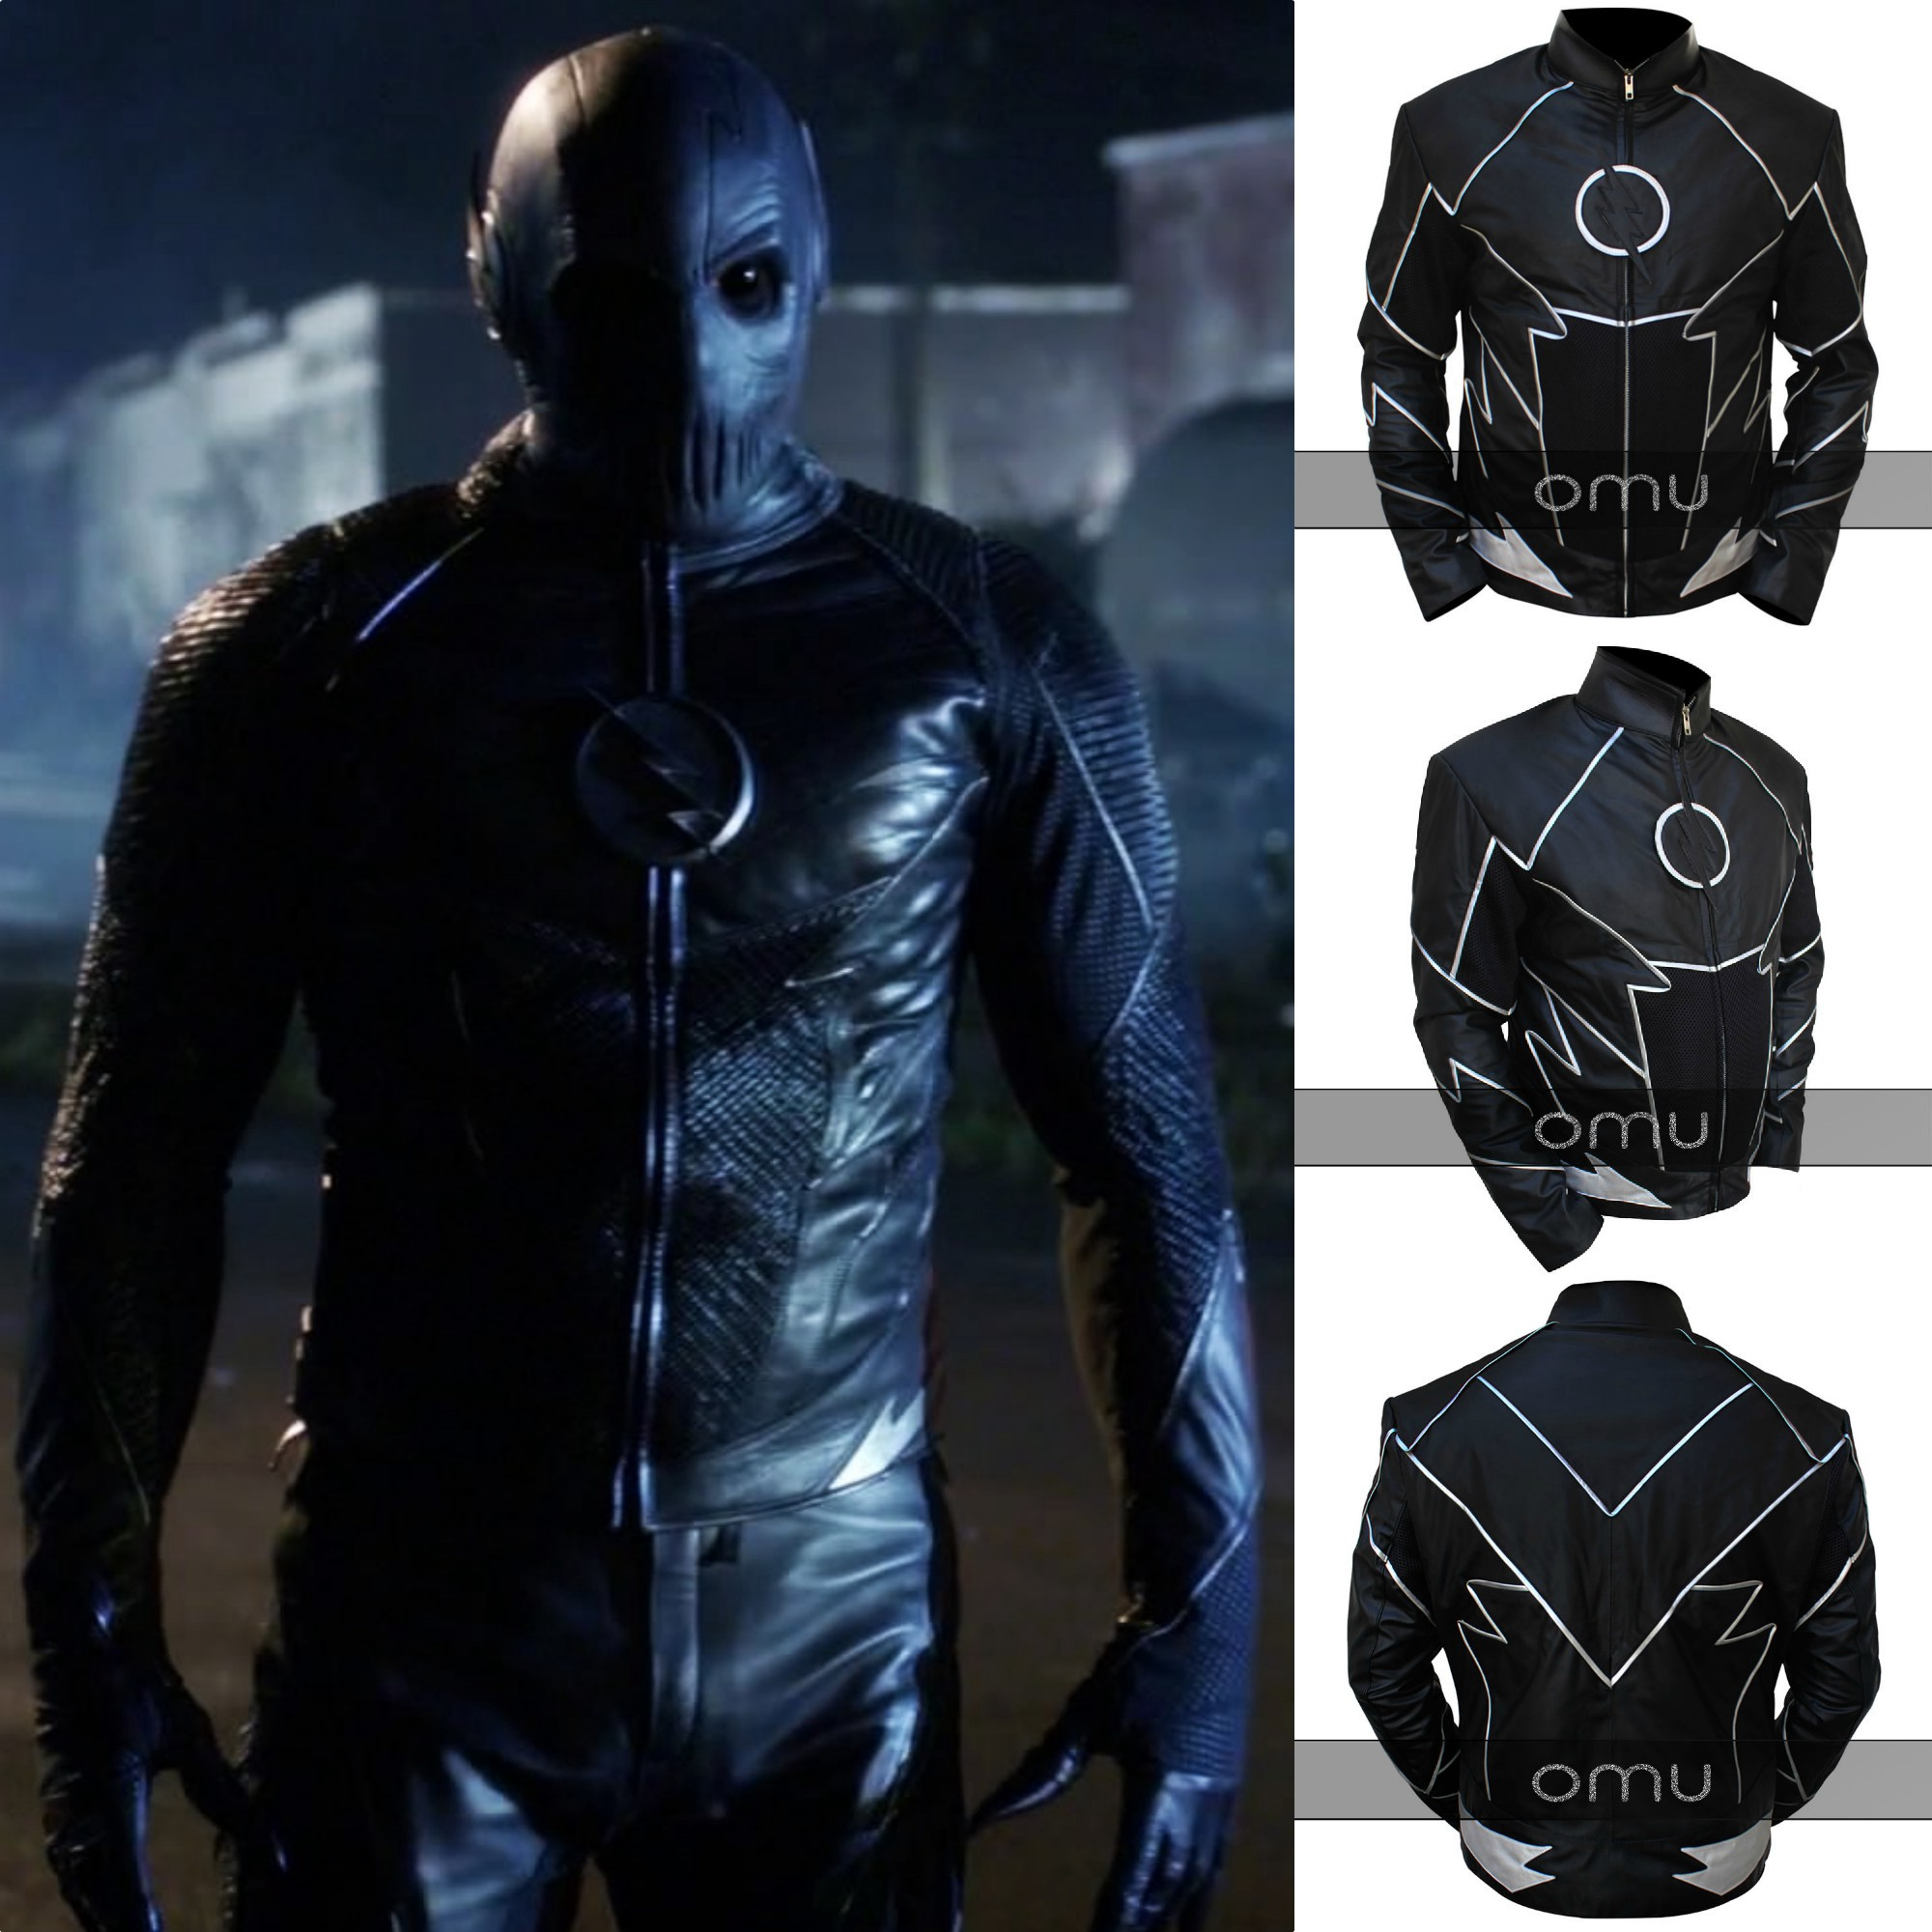 Flash Zolomon Teddy Sears Black Jacket By Laraemon Medium